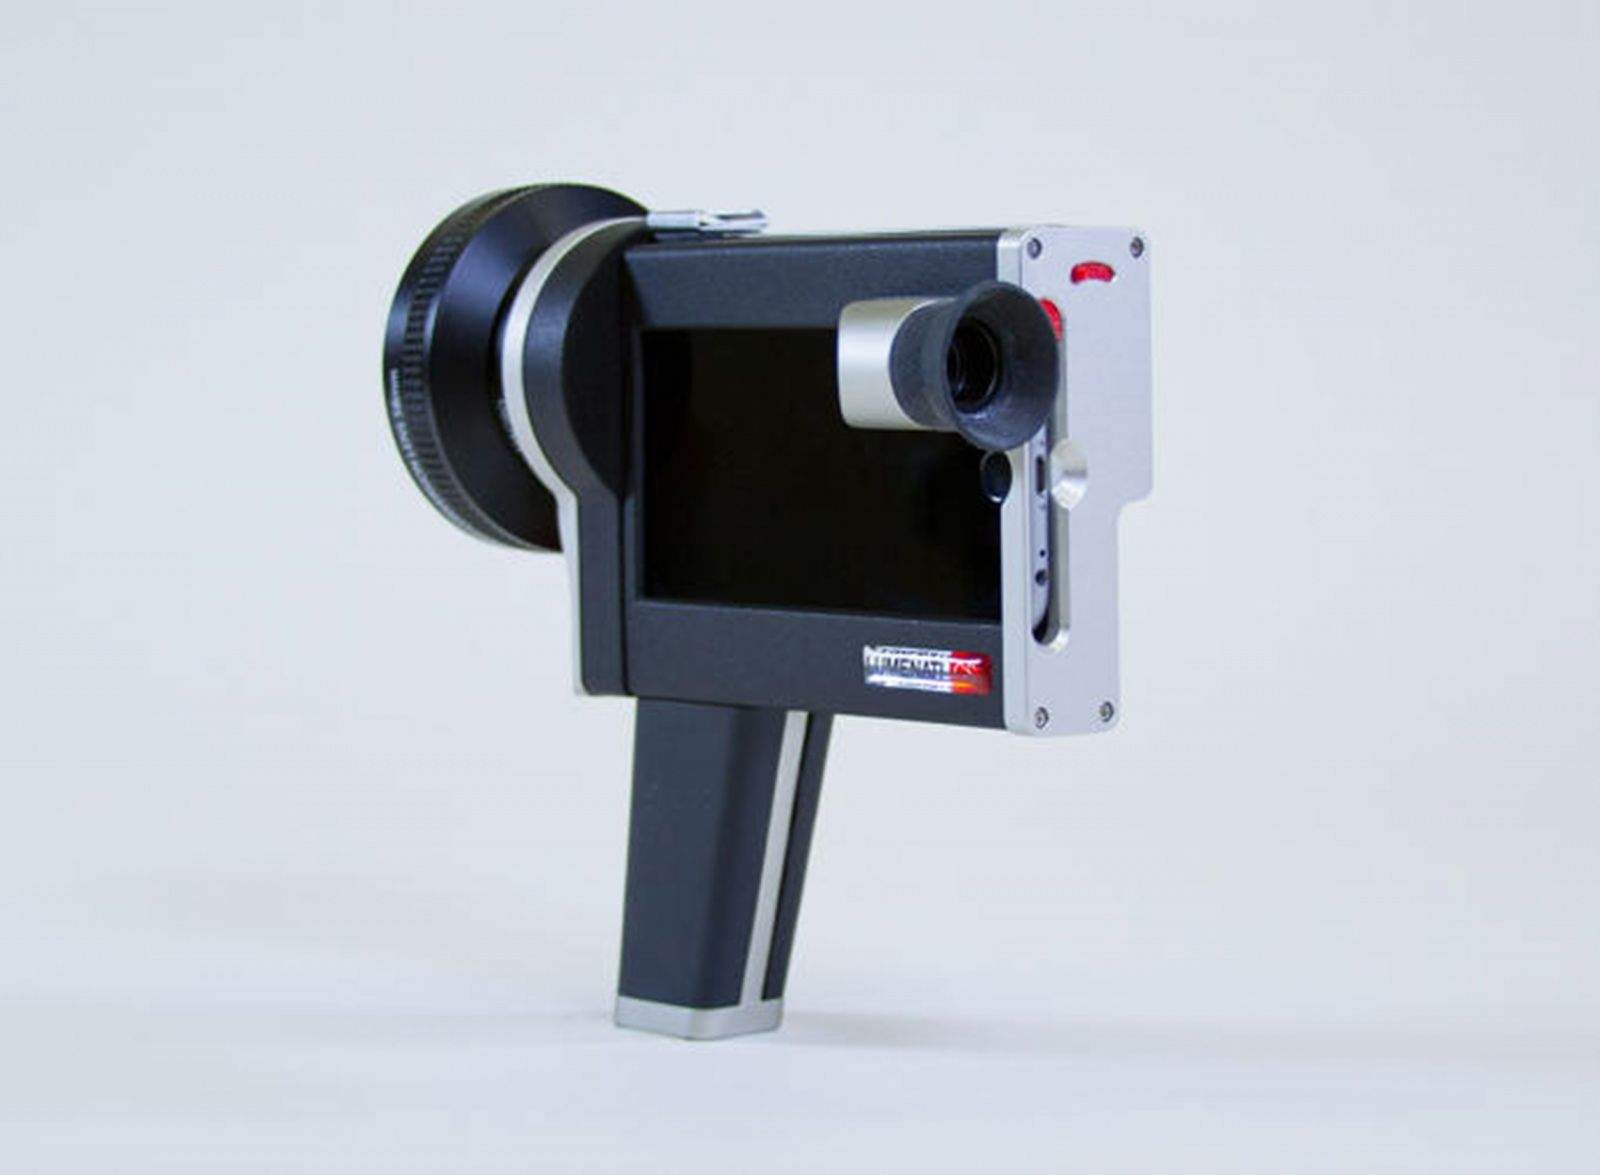 The Luminati CS1 is a case for the iPhone 6 that brings the design practicality of a Super 8 movie camera to your filmmaking.